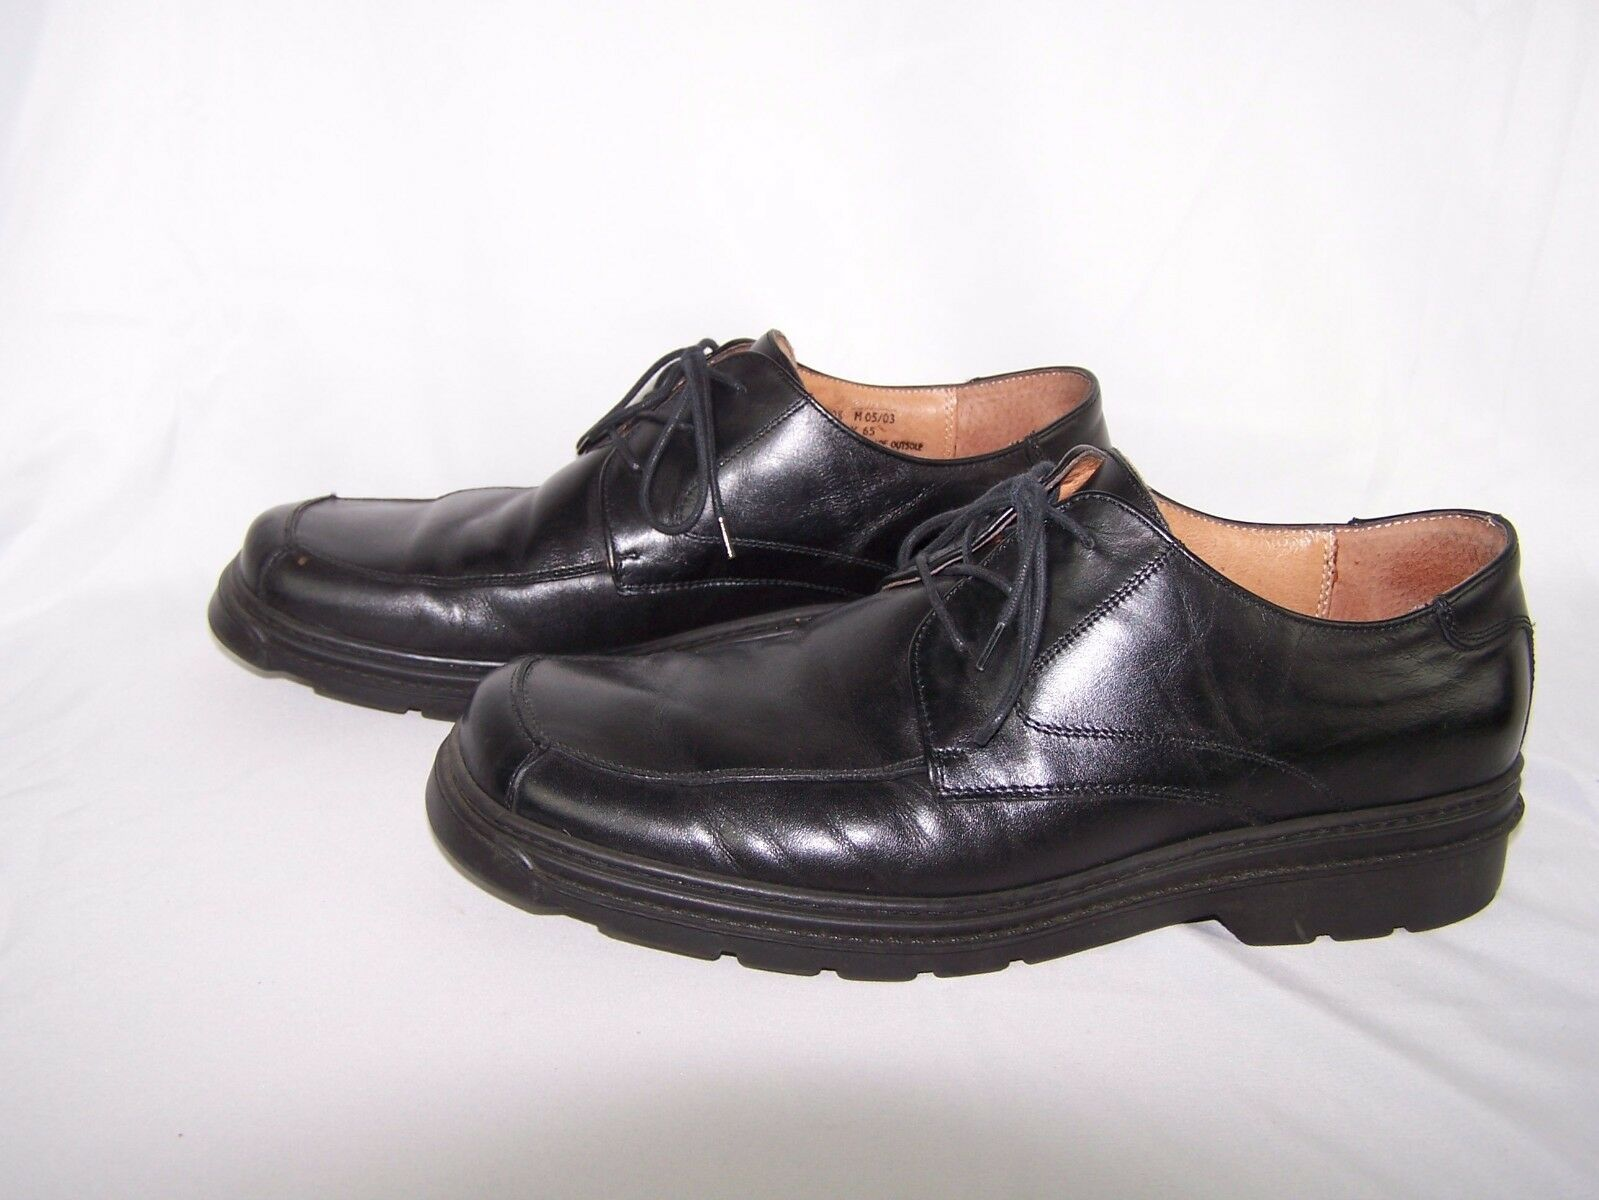 Bostonian Strada Uomo Size 10.5 Dress Dress 10.5 Shoes Nero Pelle Made in Italy 7a9a62